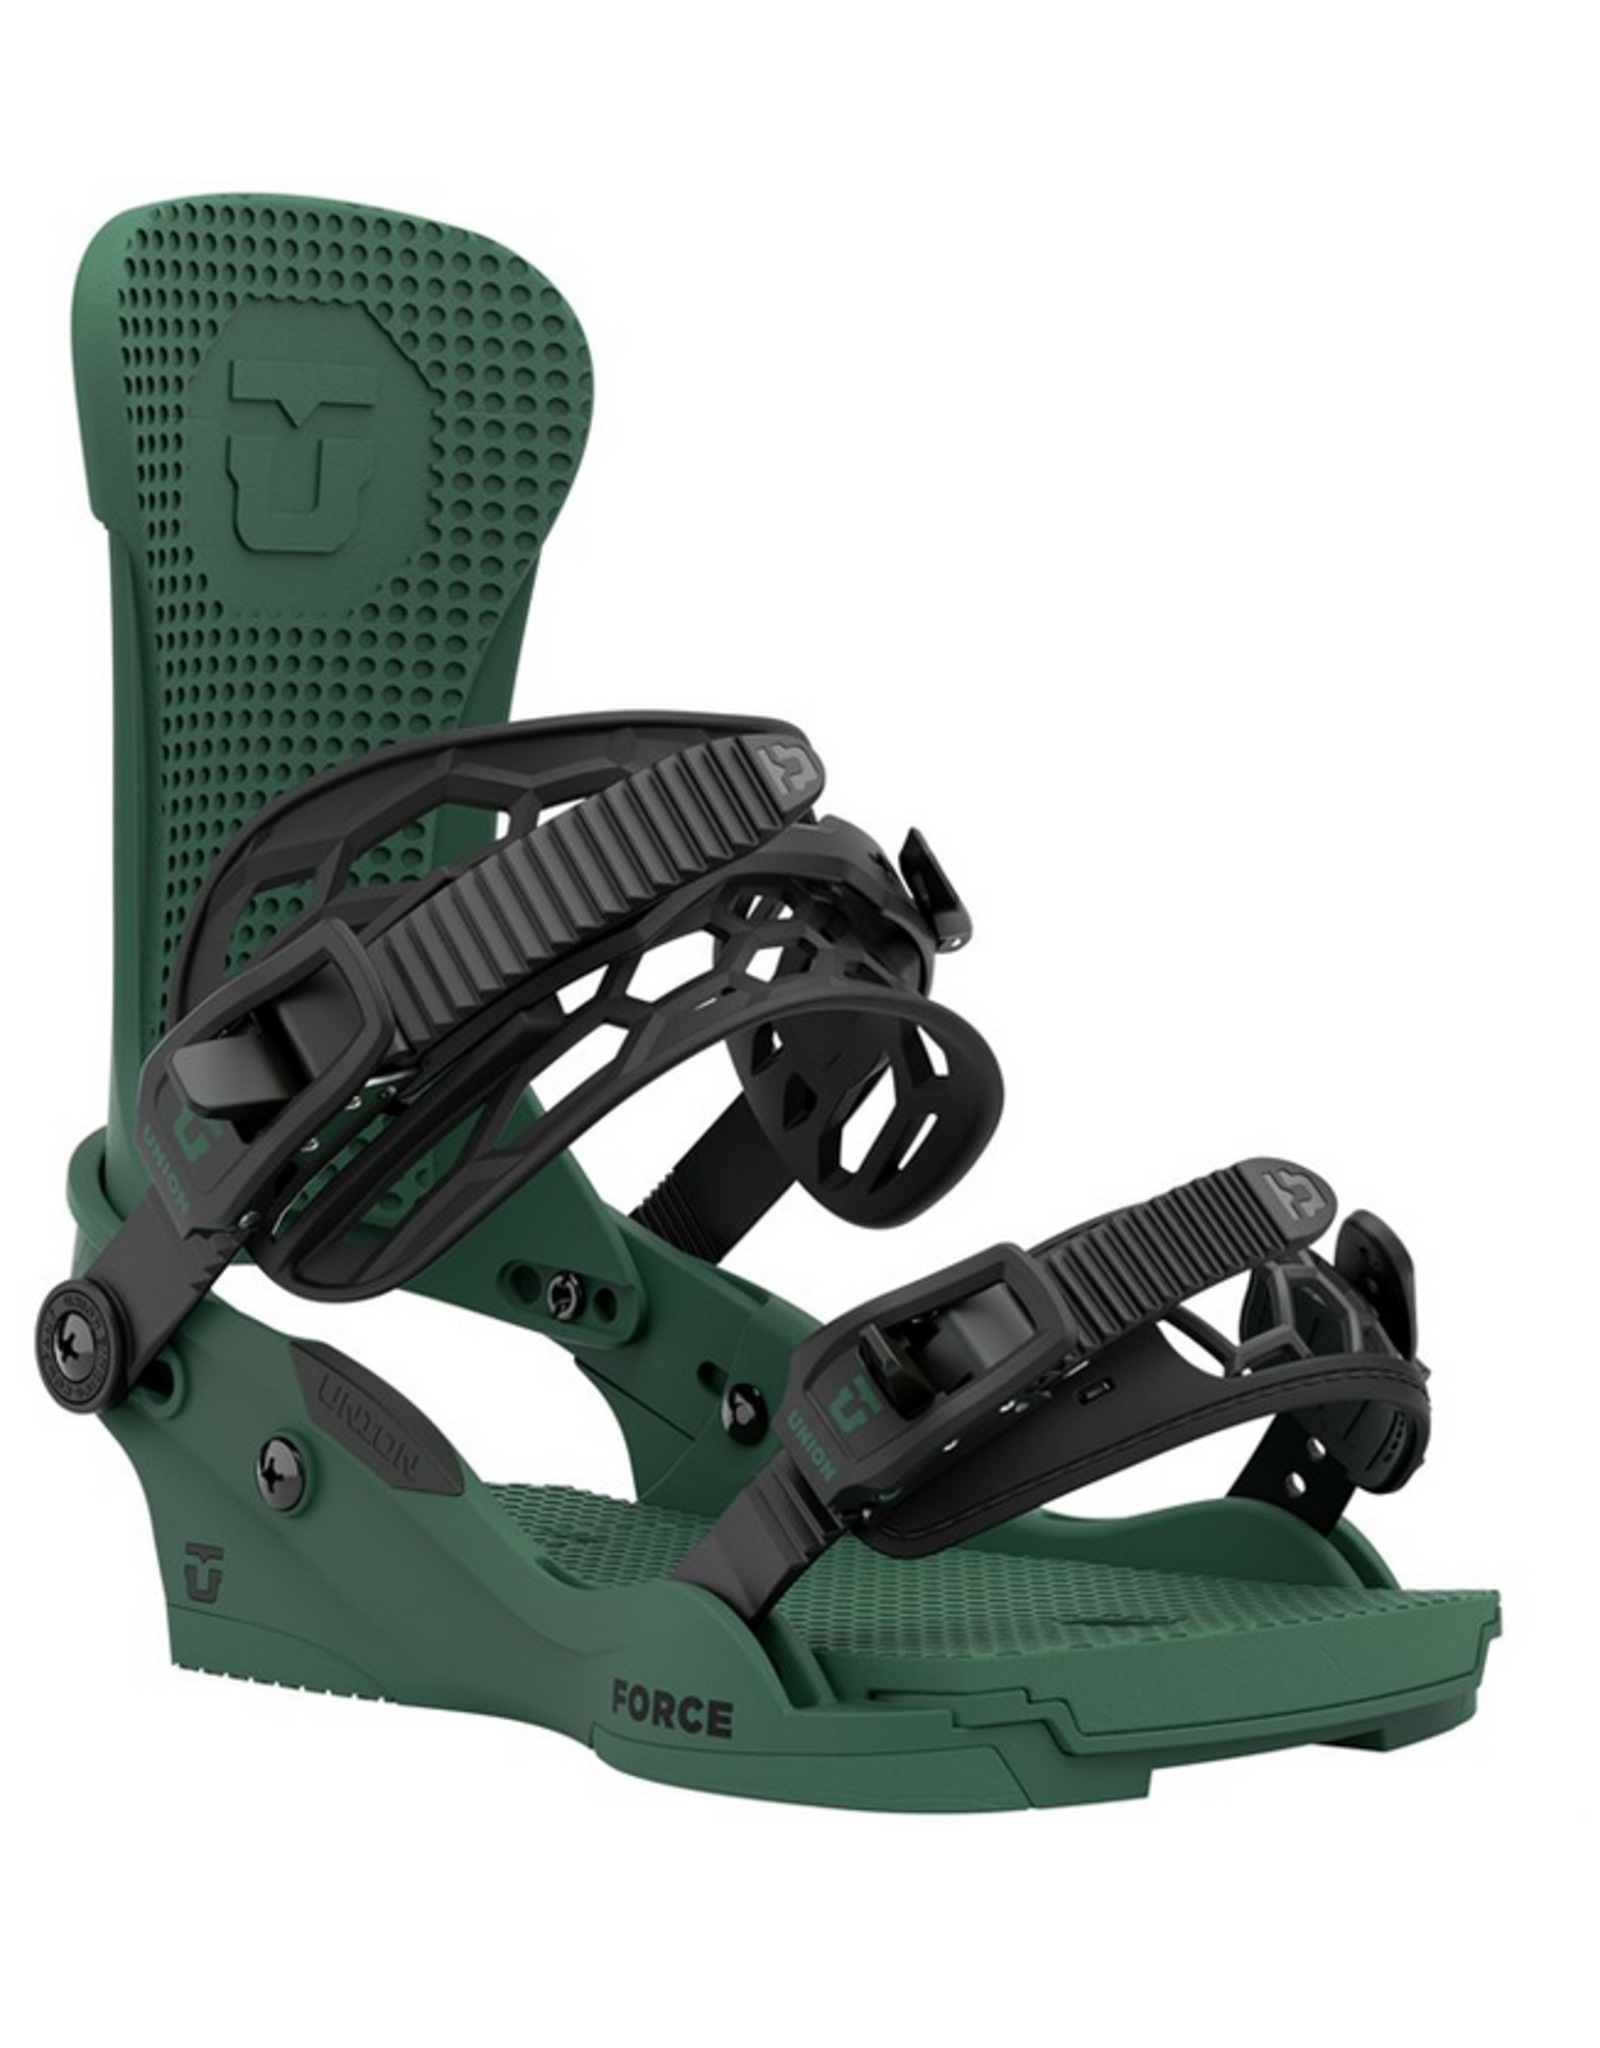 UNION UNION 2021 FORCE BINDINGS FOREST GREEN TEAM HIGHBACK